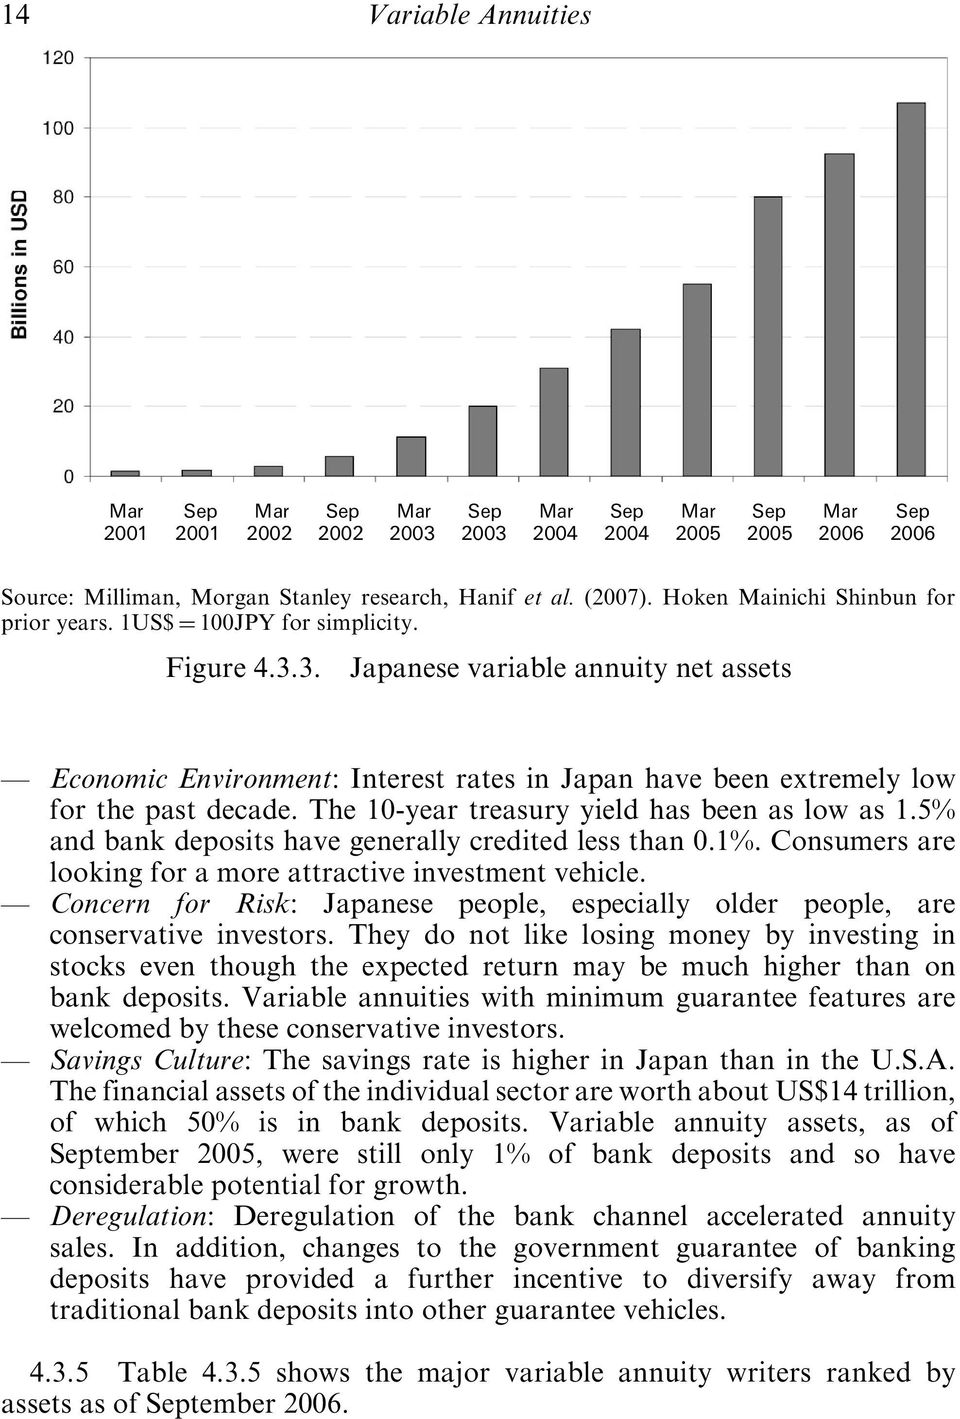 3. Japanese variable annuity net assets ö Economic Environment: Interest rates in Japan have been extremely low for the past decade. The 10-year treasury yield has been as low as 1.